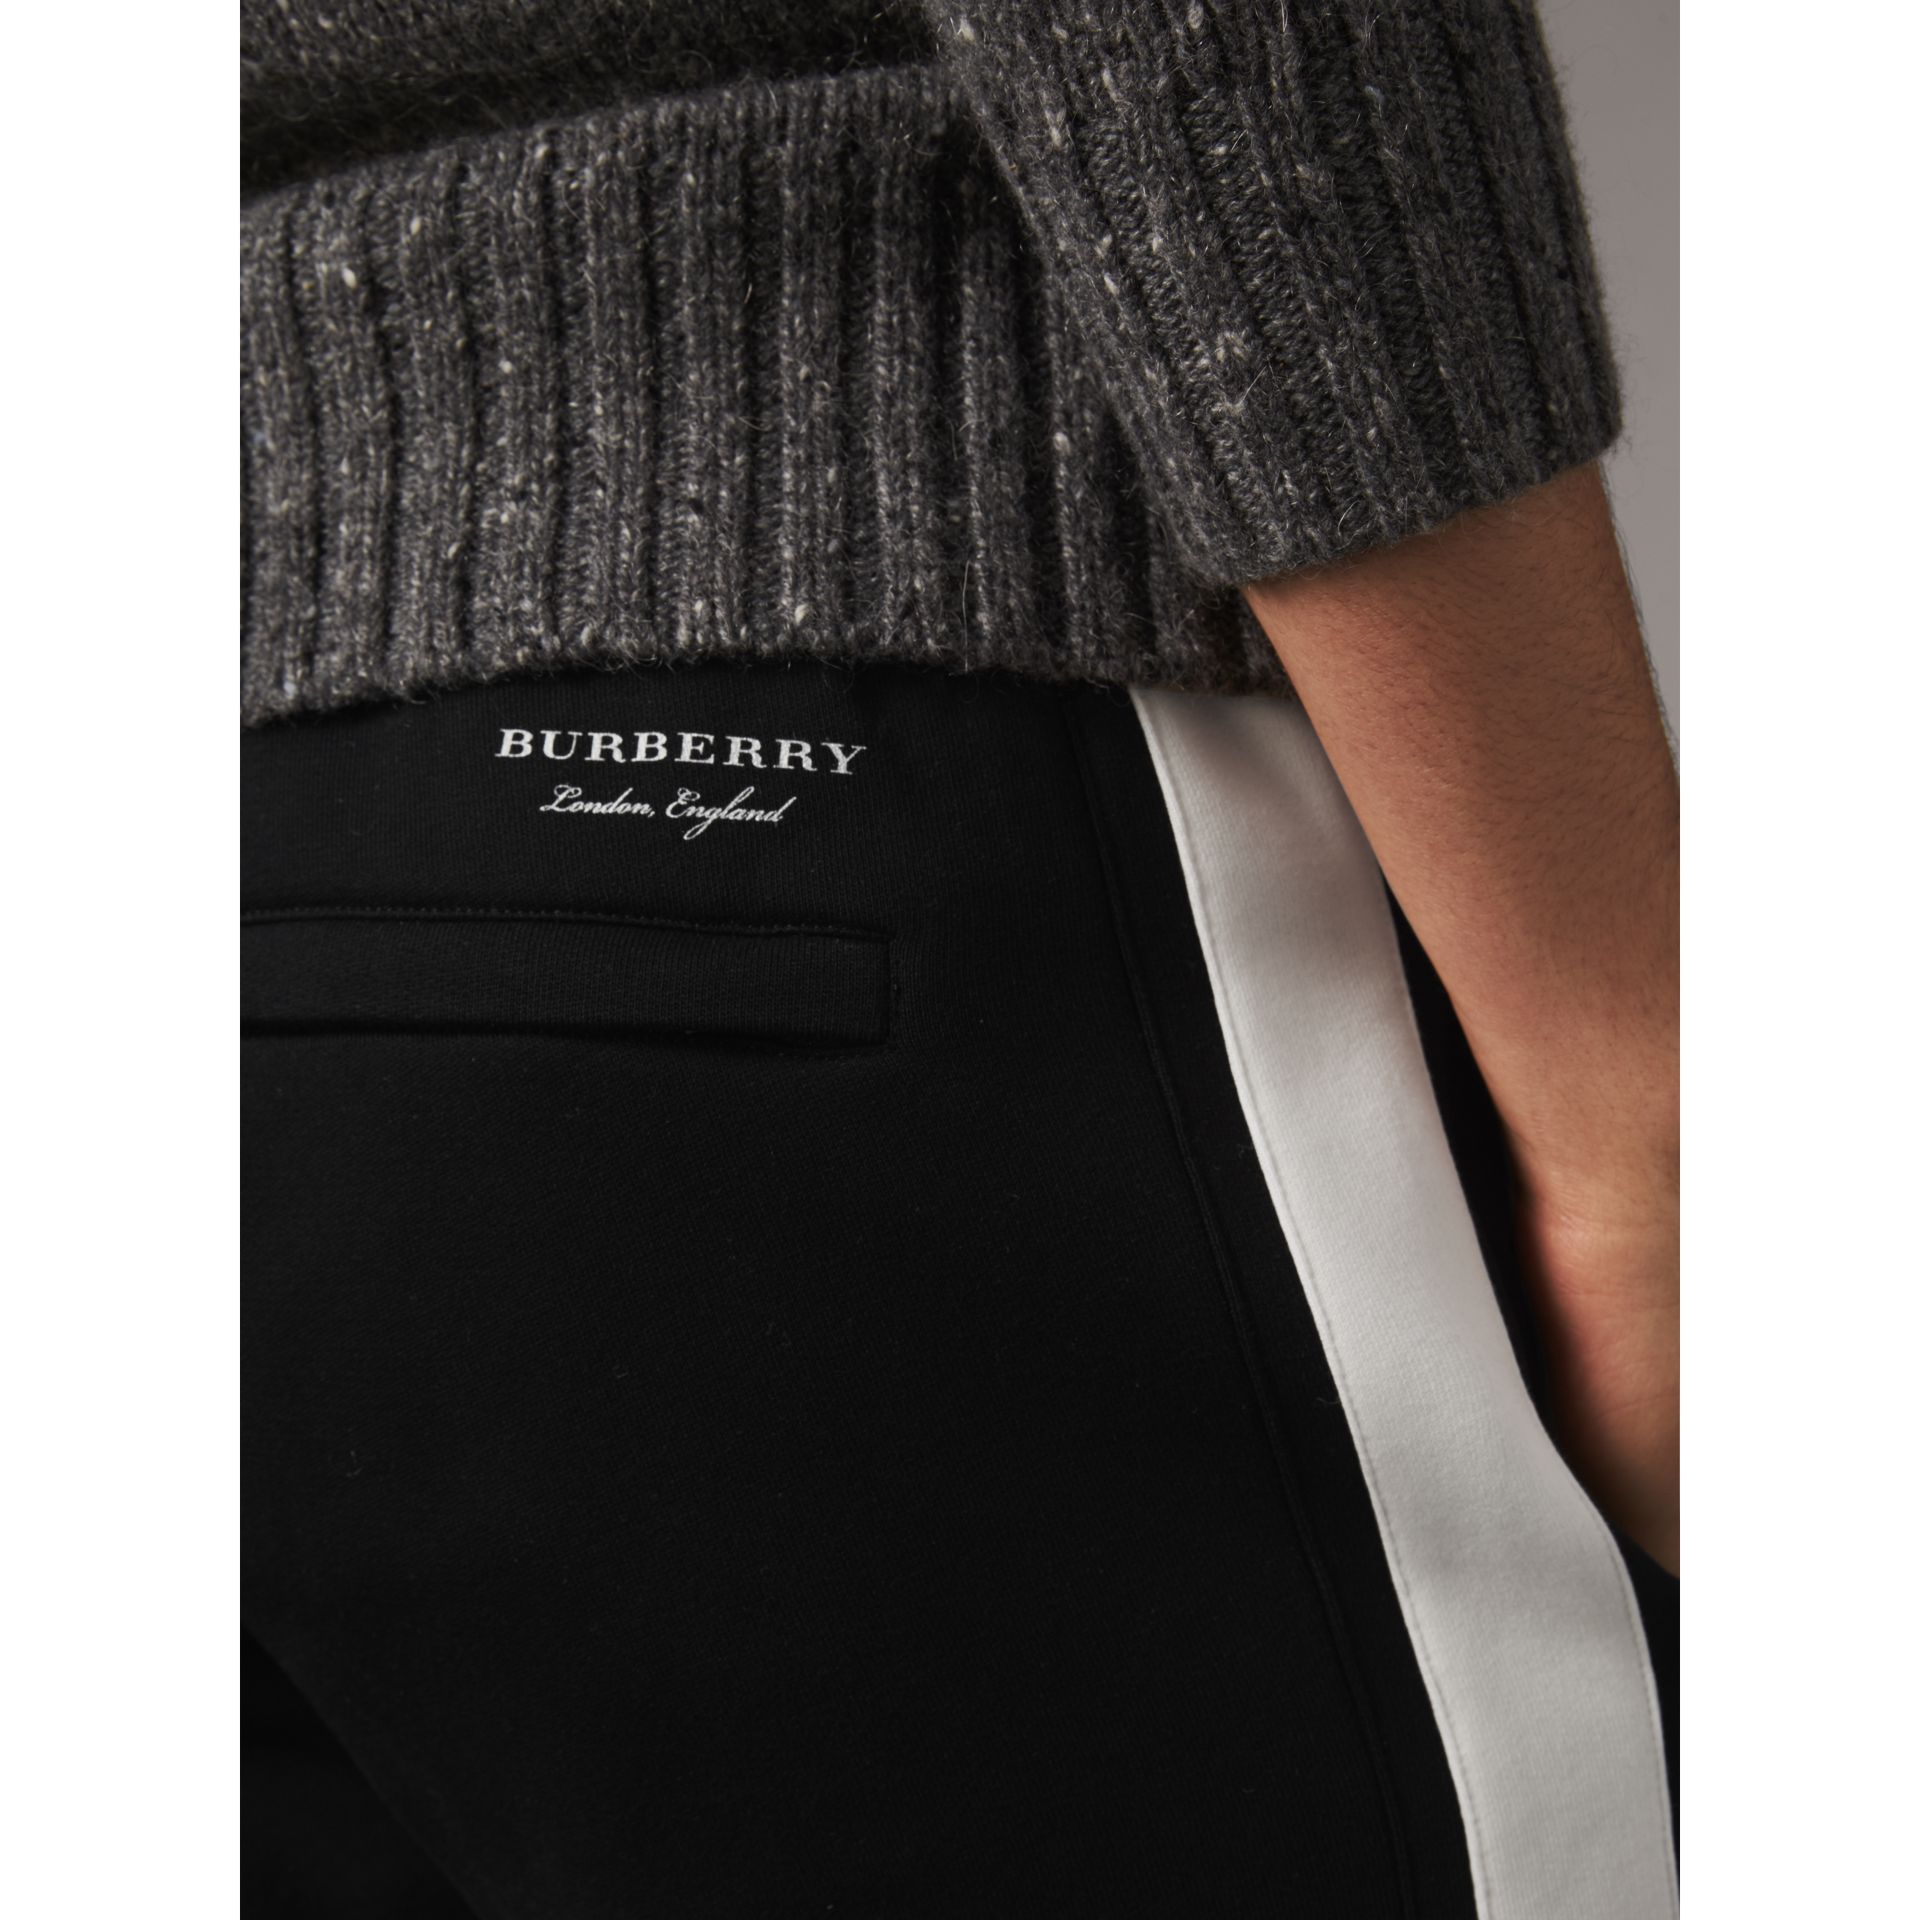 Bold Stripe Detail Cotton Blend Sweatpants in Black - Men | Burberry - gallery image 1